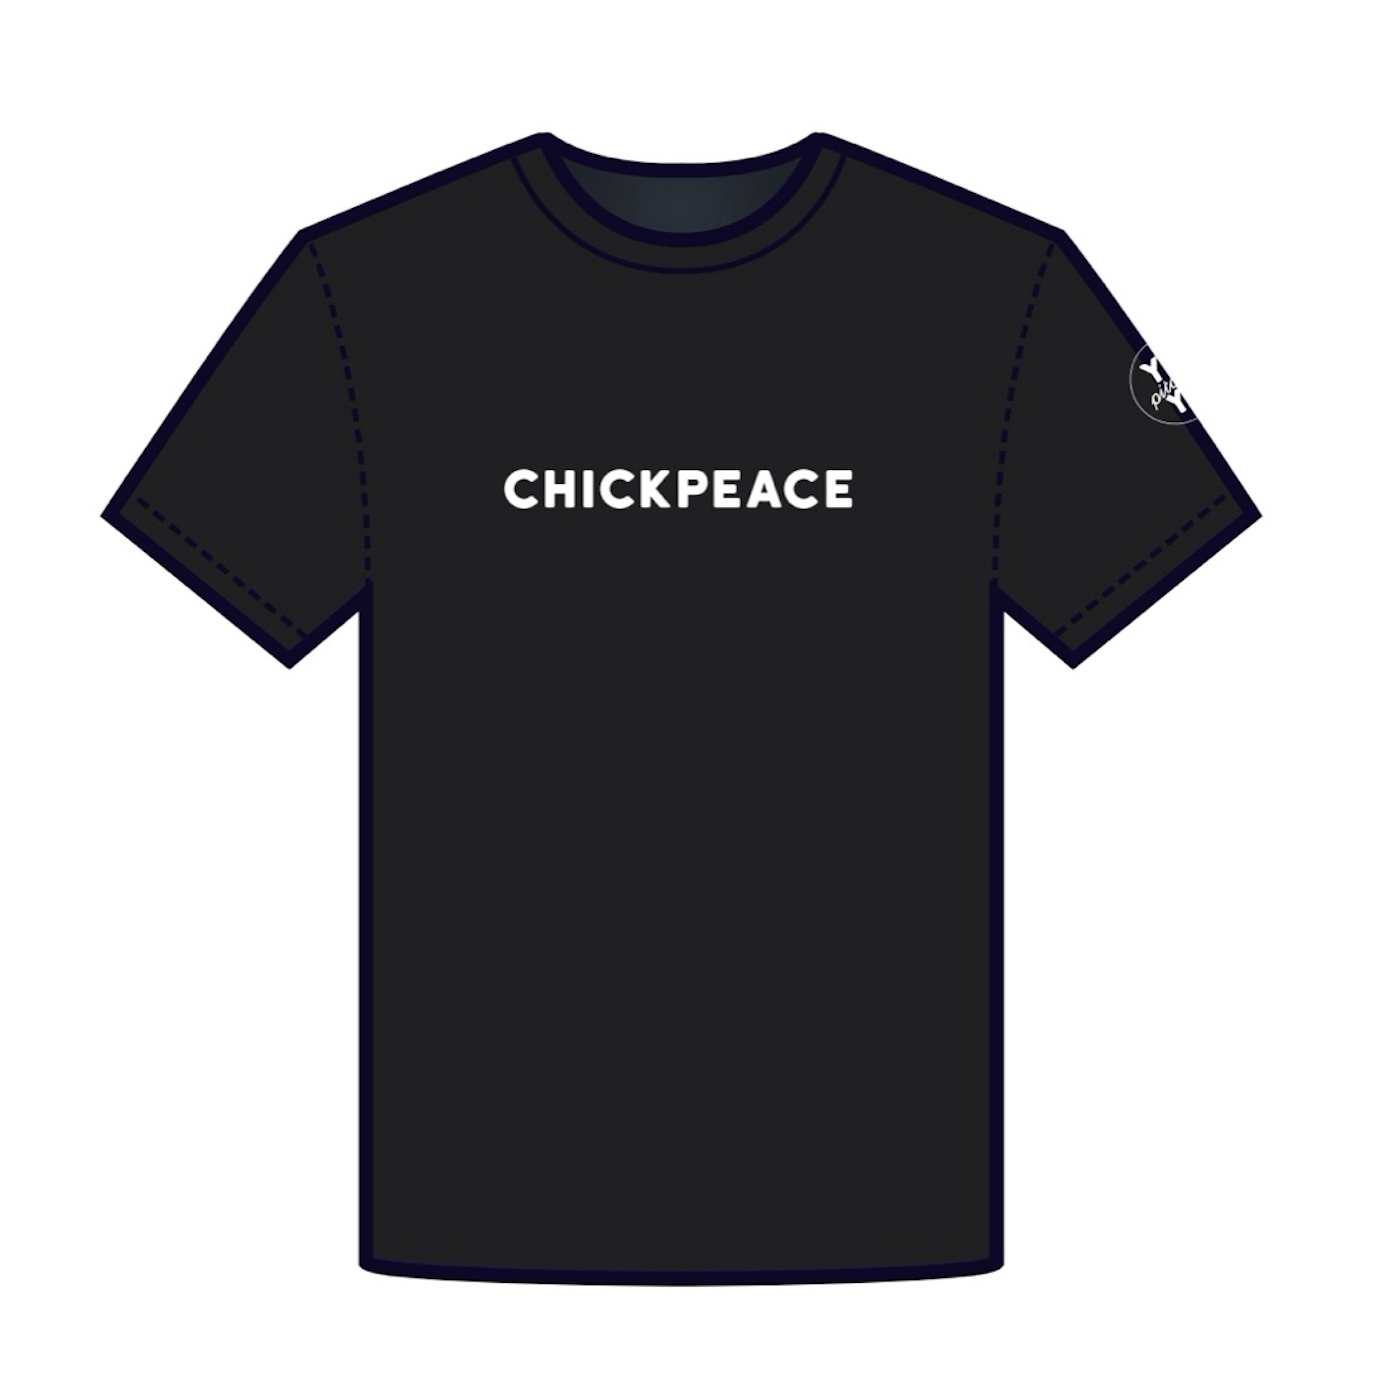 YOYA Shirt Chickpeace